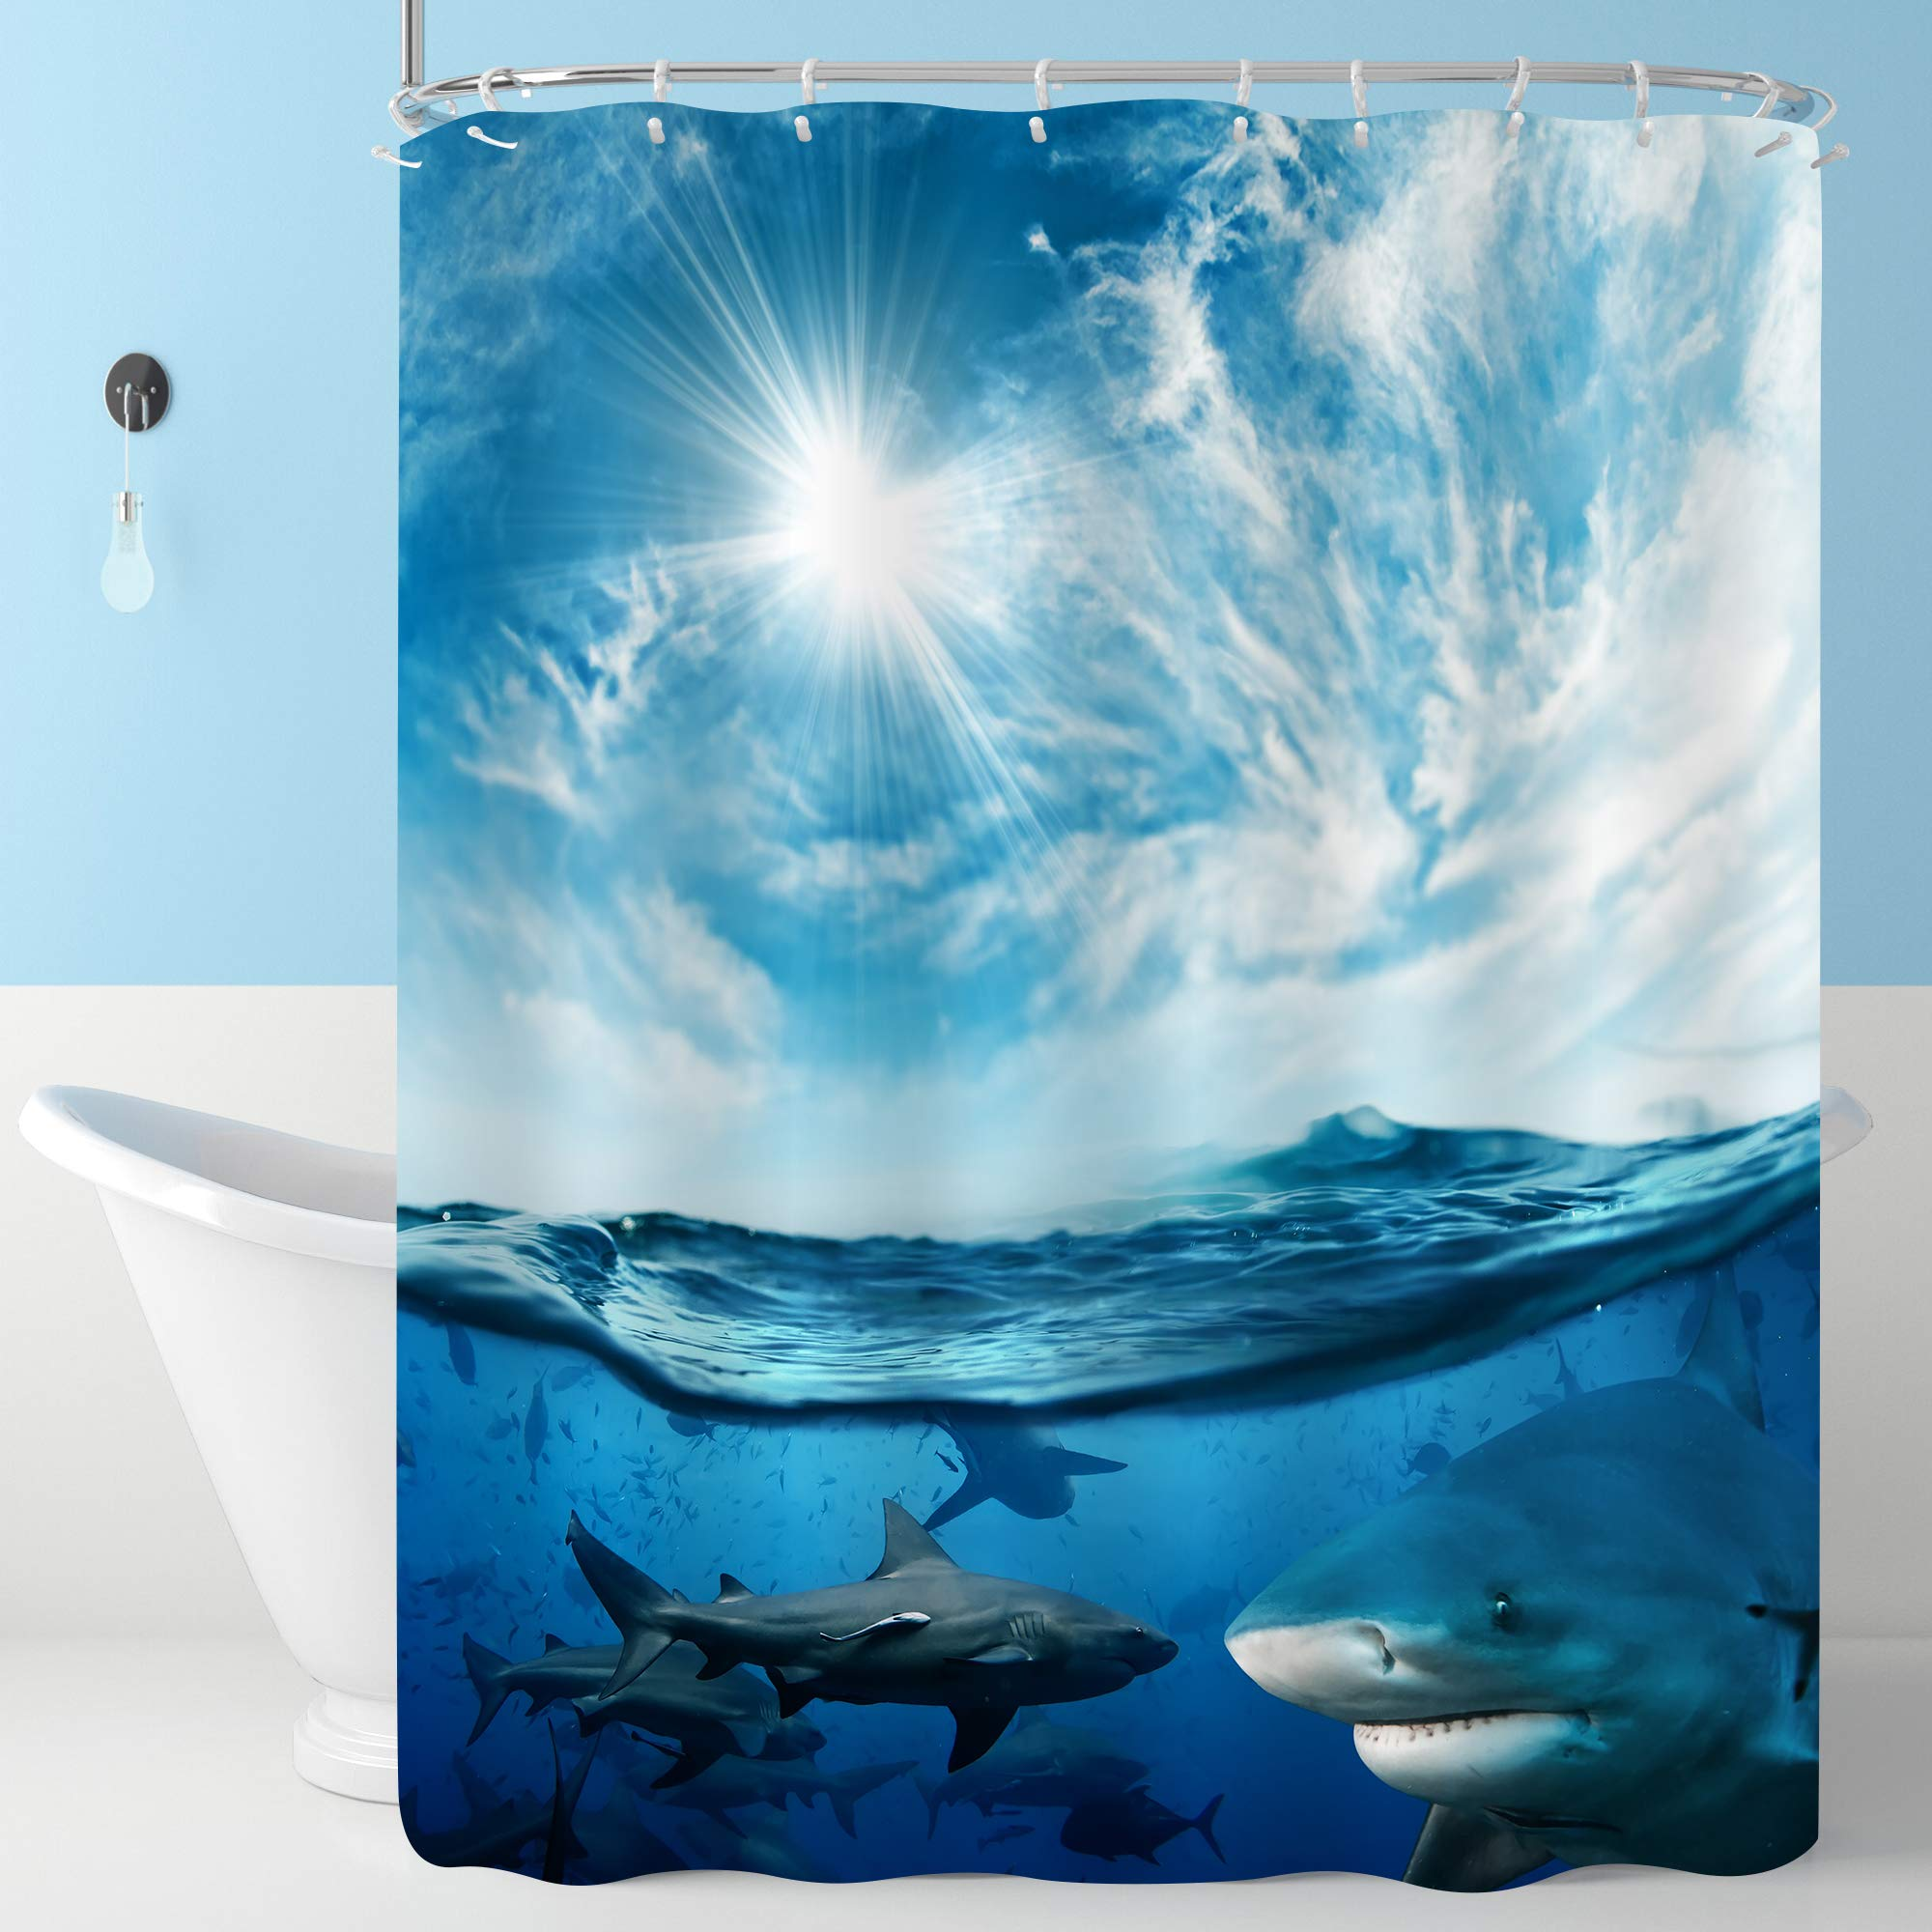 MitoVilla Beautiful Cloudy Seascape Shower Curtain with Sunlight and a Lot of Dangerous Sharks Underwater, Novelty Summer Ocean Theme Home Decorations, Water Resistant Cloth, 72 W x 72 L inches, Blue